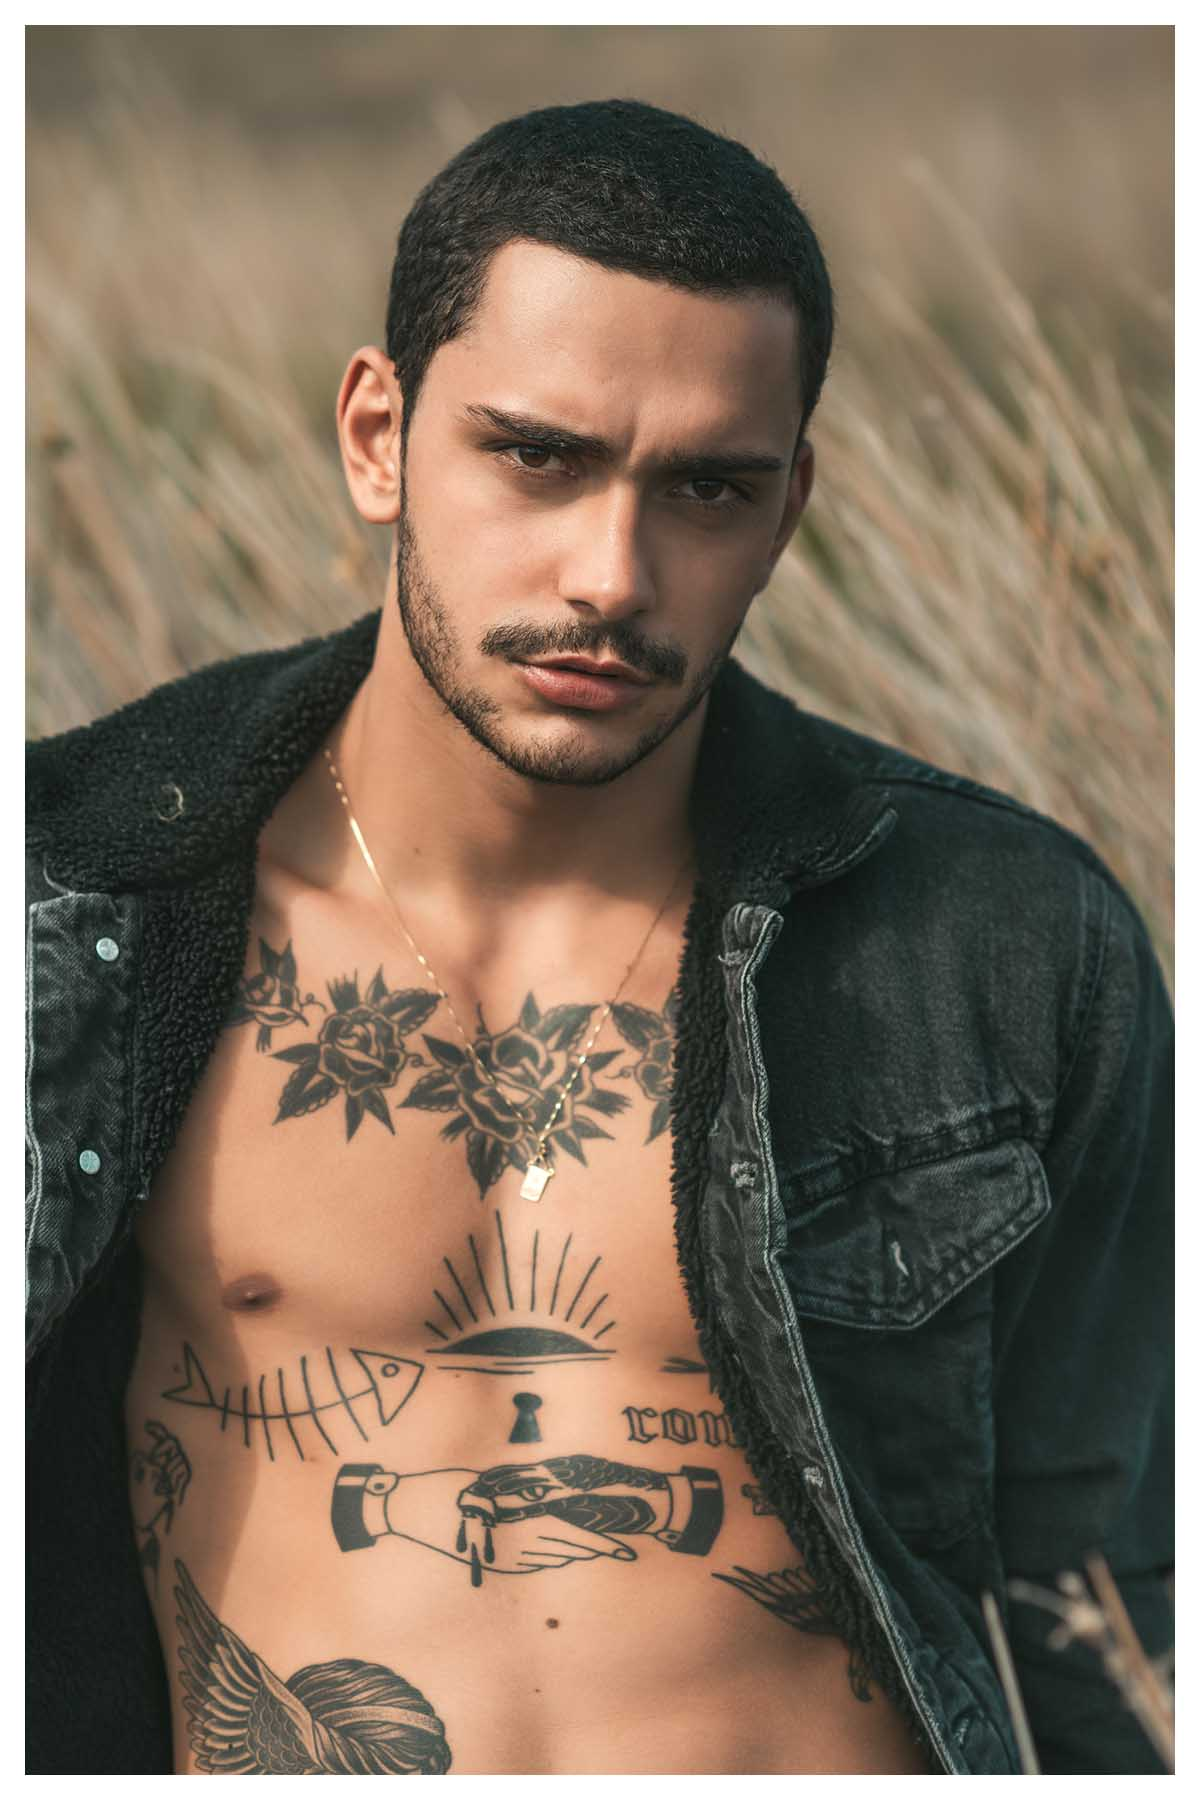 Bryan Santos by Felipe Valim for Brazilian Male Model